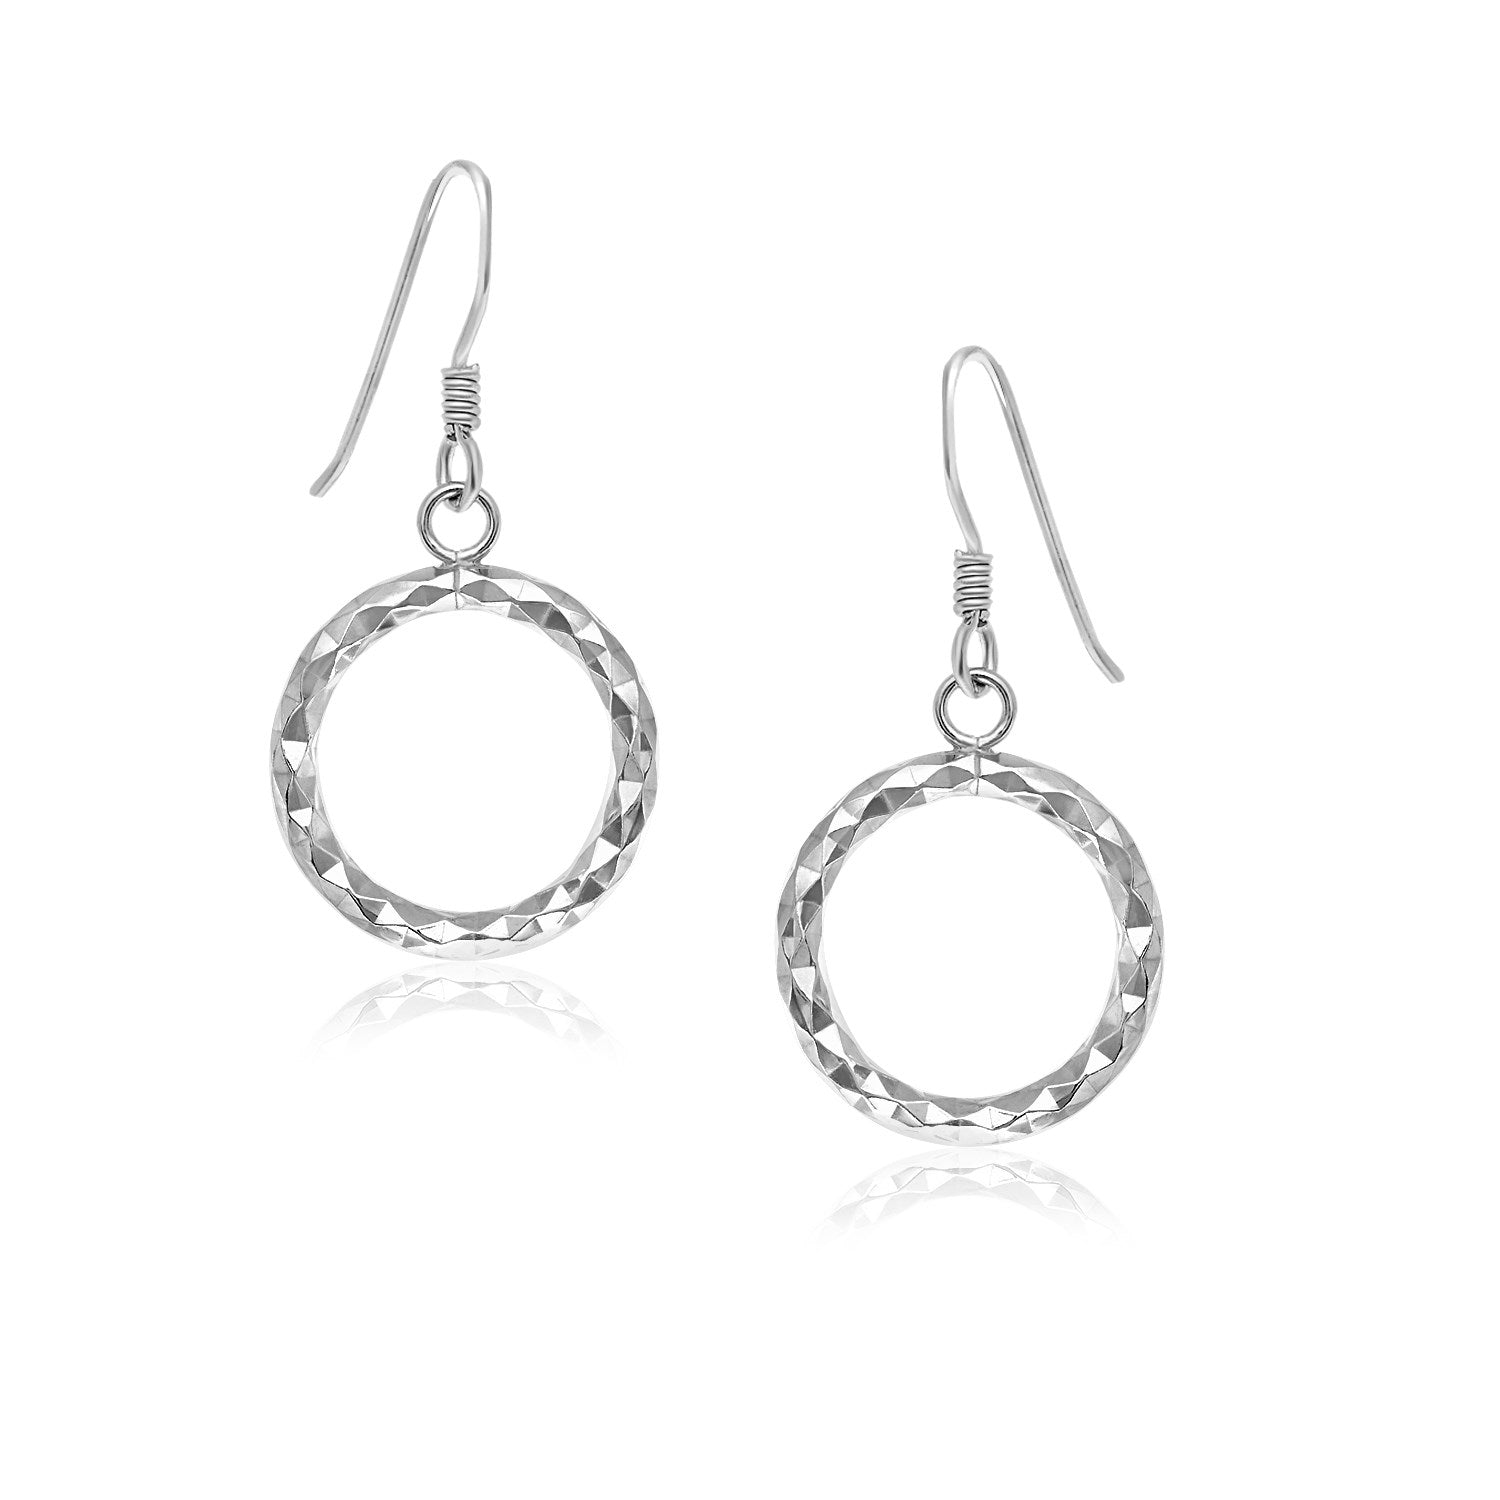 Unique Modern Paris Style Sterling Silver Textured Open Circle Drop Style Earrings